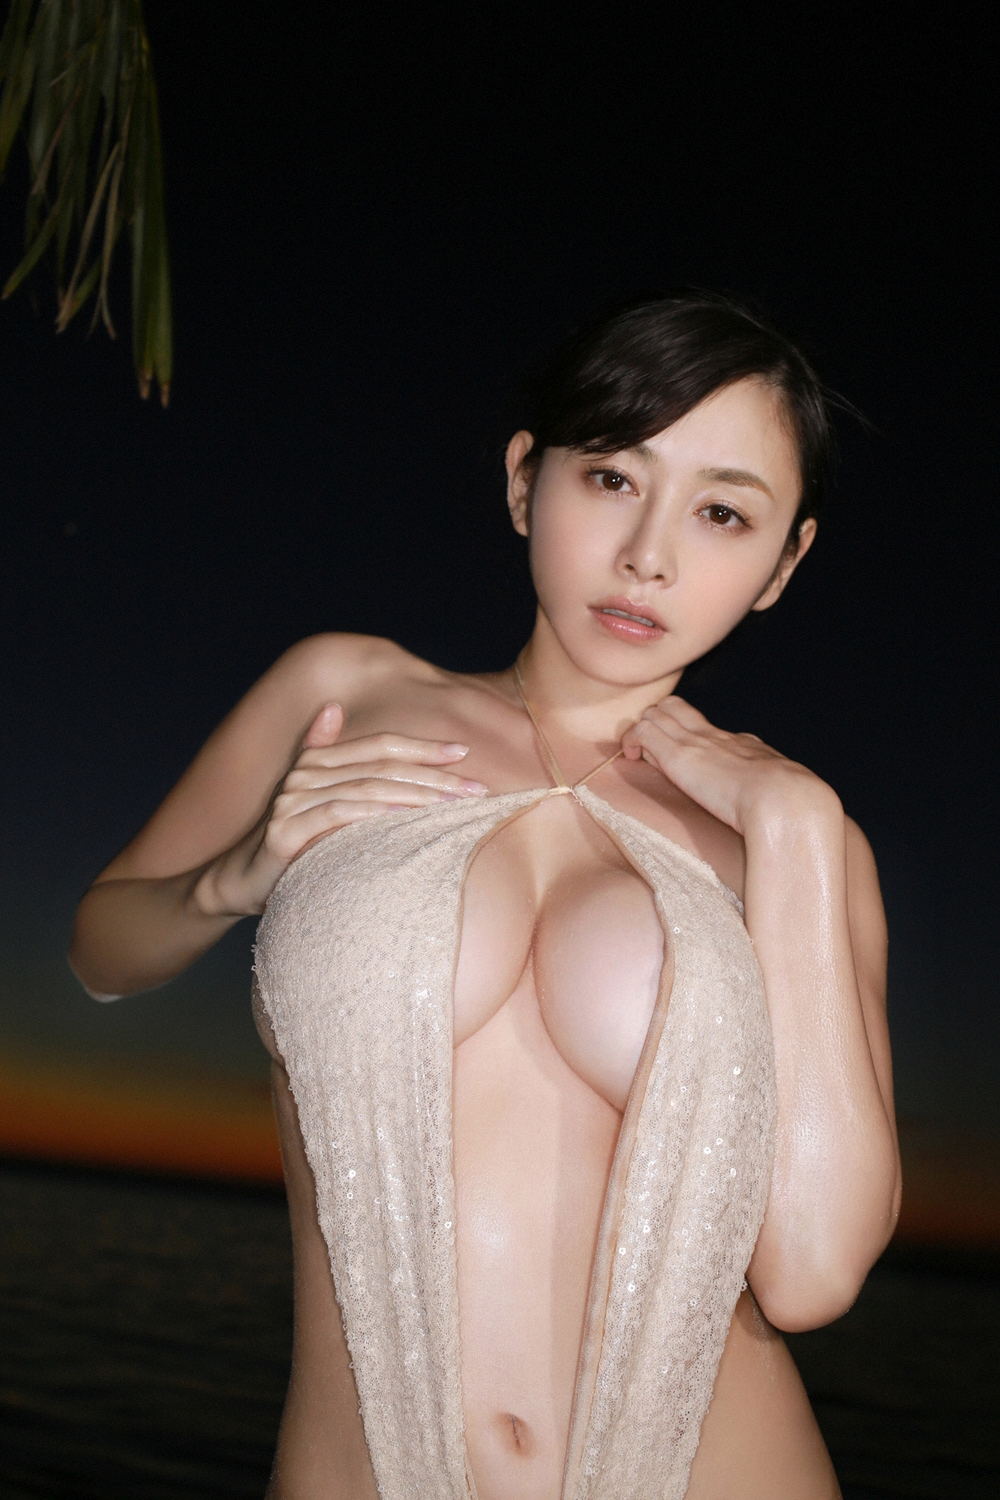 杉原杏璃 Anri Sugihara YS Web Vol 655 Pictures 67